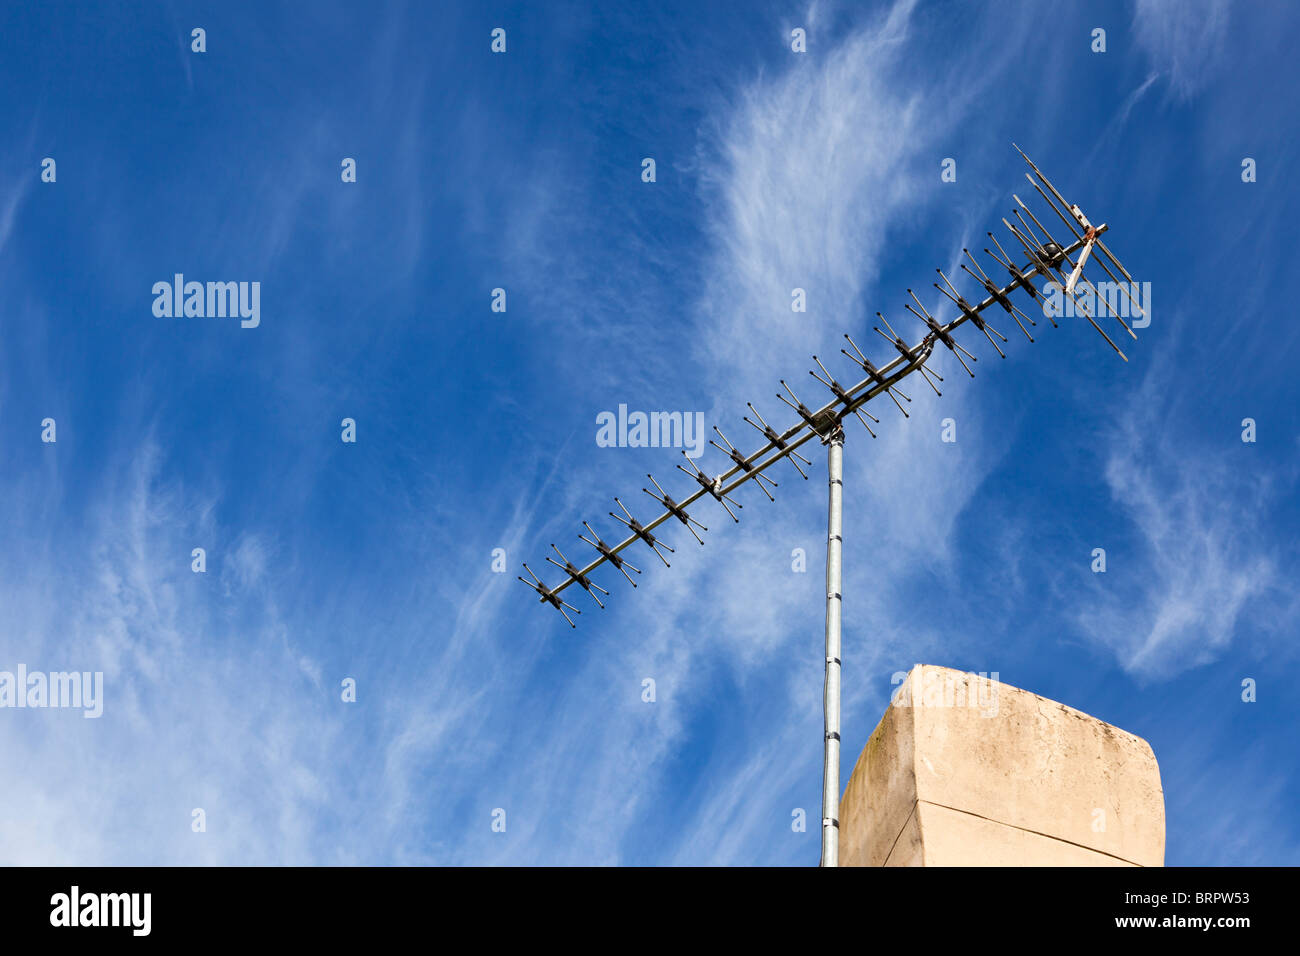 High gain TV aerial on chimney stack UK - Stock Image